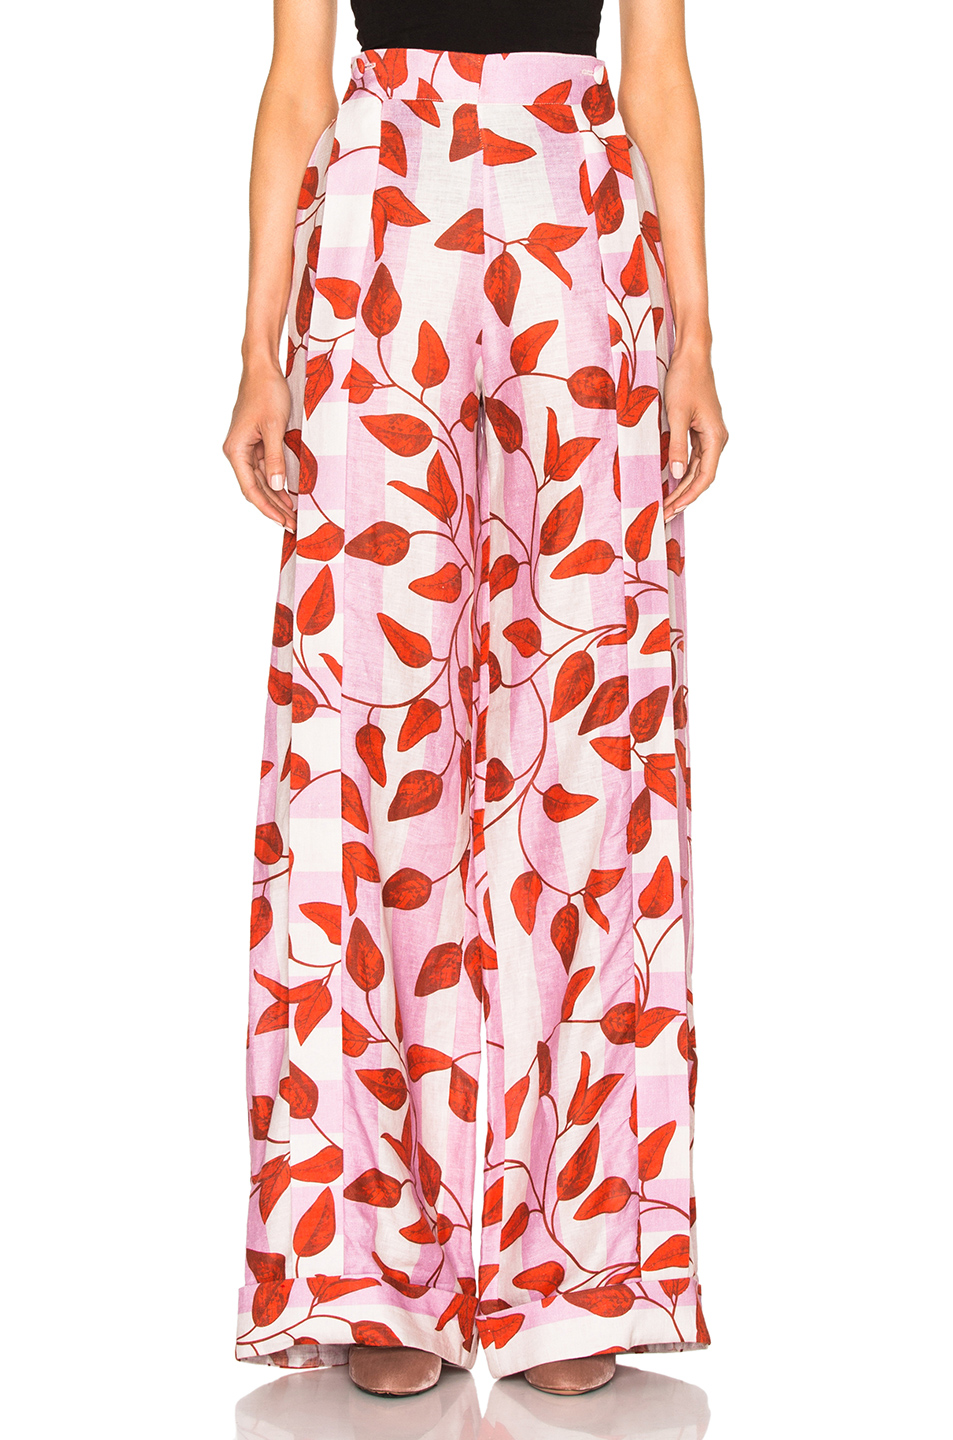 JOHANNA ORTIZ Colorado High-Waist Leaf-Print Trousers, Red/Pink at FORWARD